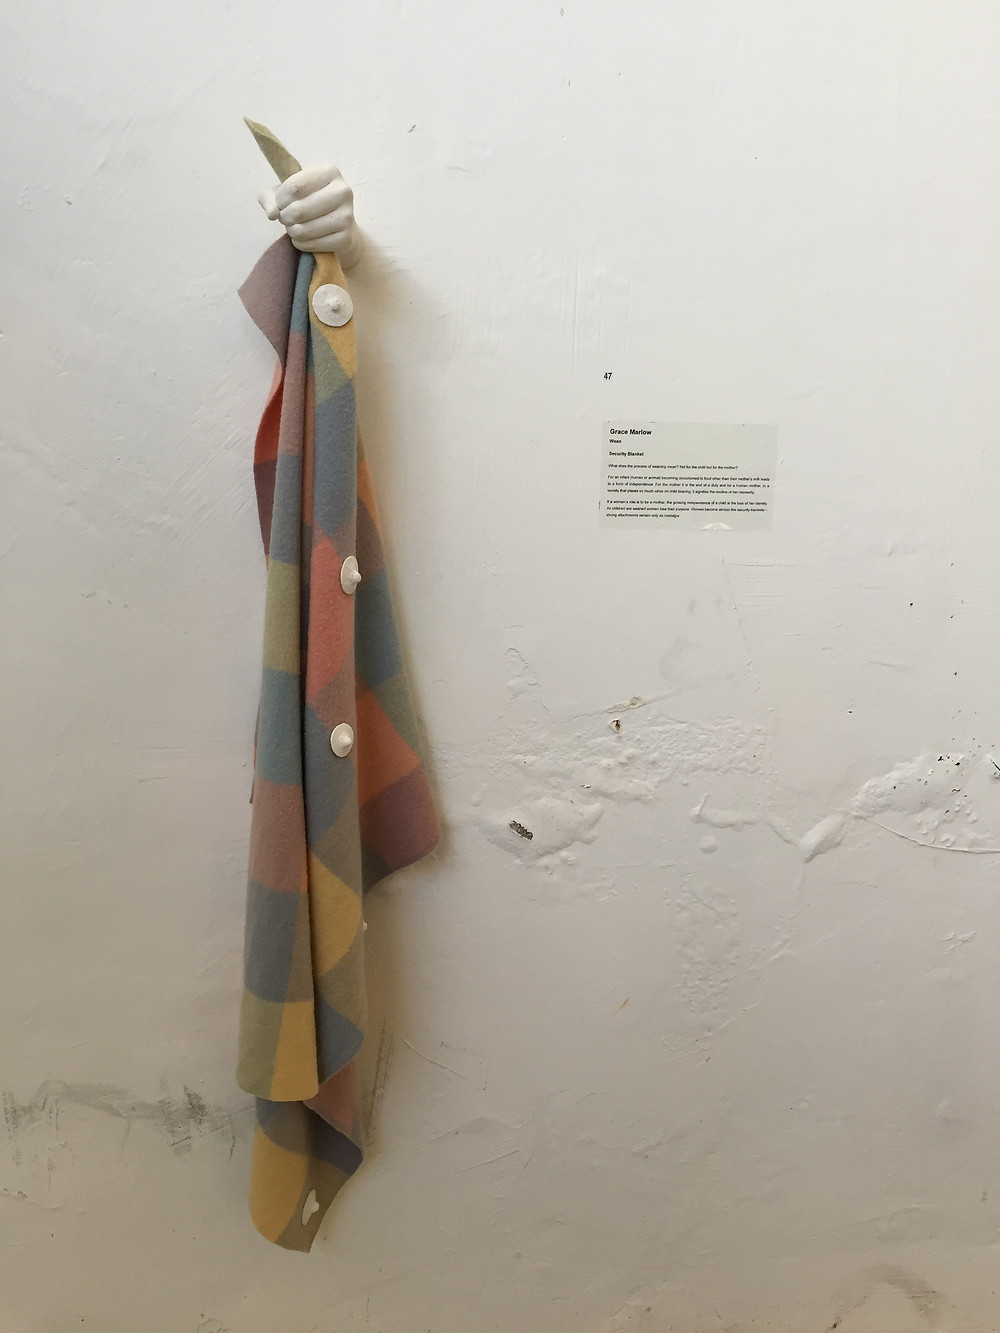 ONE OF MY FAVOURITE PIECES, 'SECURITY BLANKET' BY GRACE MARLOW